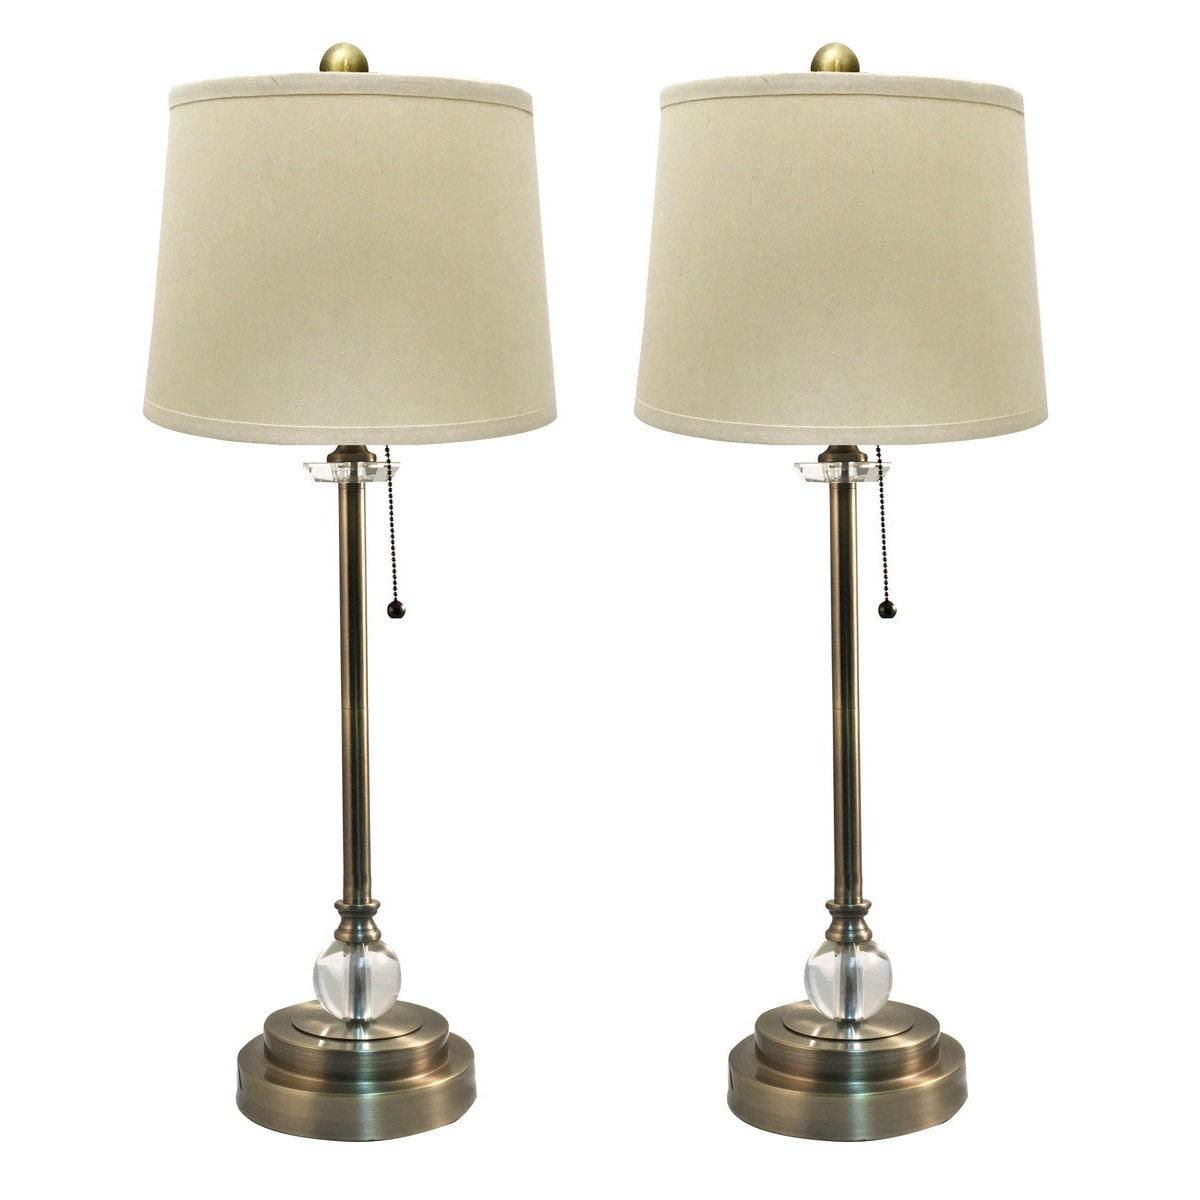 Royal Designs Set Of 2 Buffet Lamps In Antique Br With Linen Cream Hard Back Lamp Shades 27 Tall